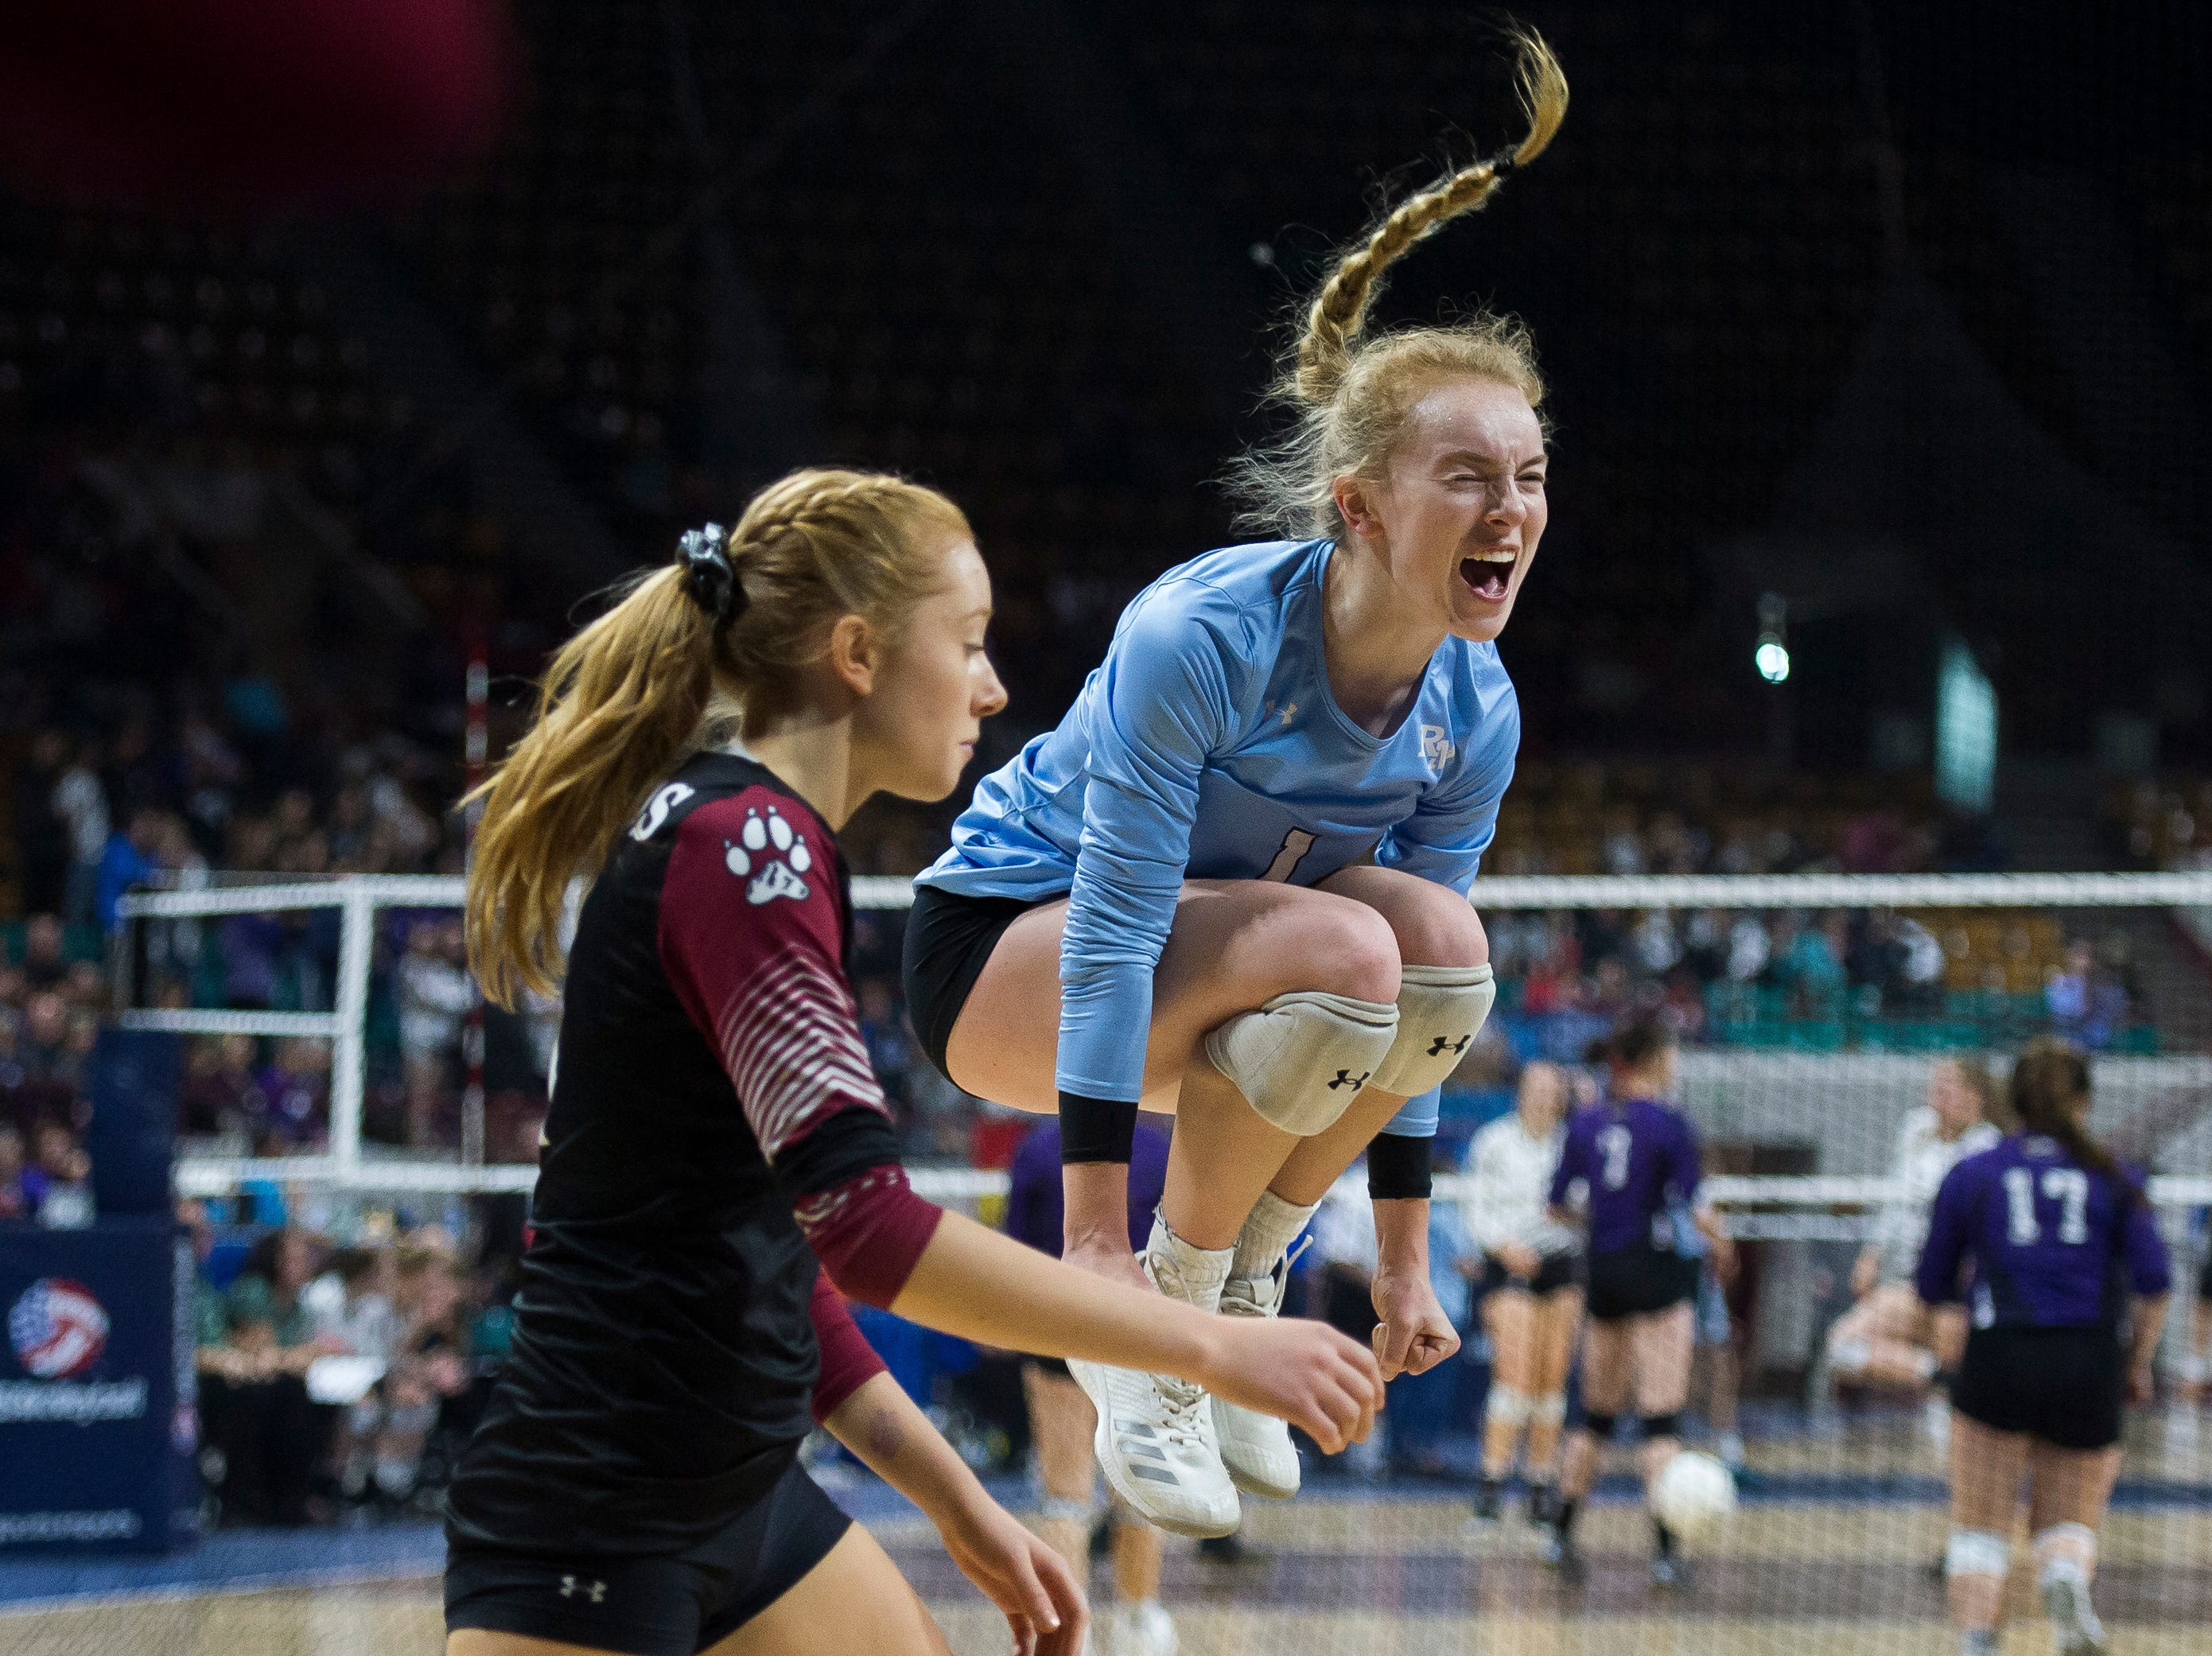 Rocky Mountain High School senior Annika Larson (1) celebrates a point during a first round state game against Eaglecrest on Thursday, Nov. 8, 2018, at the Denver Coliseum in Denver, Colo.